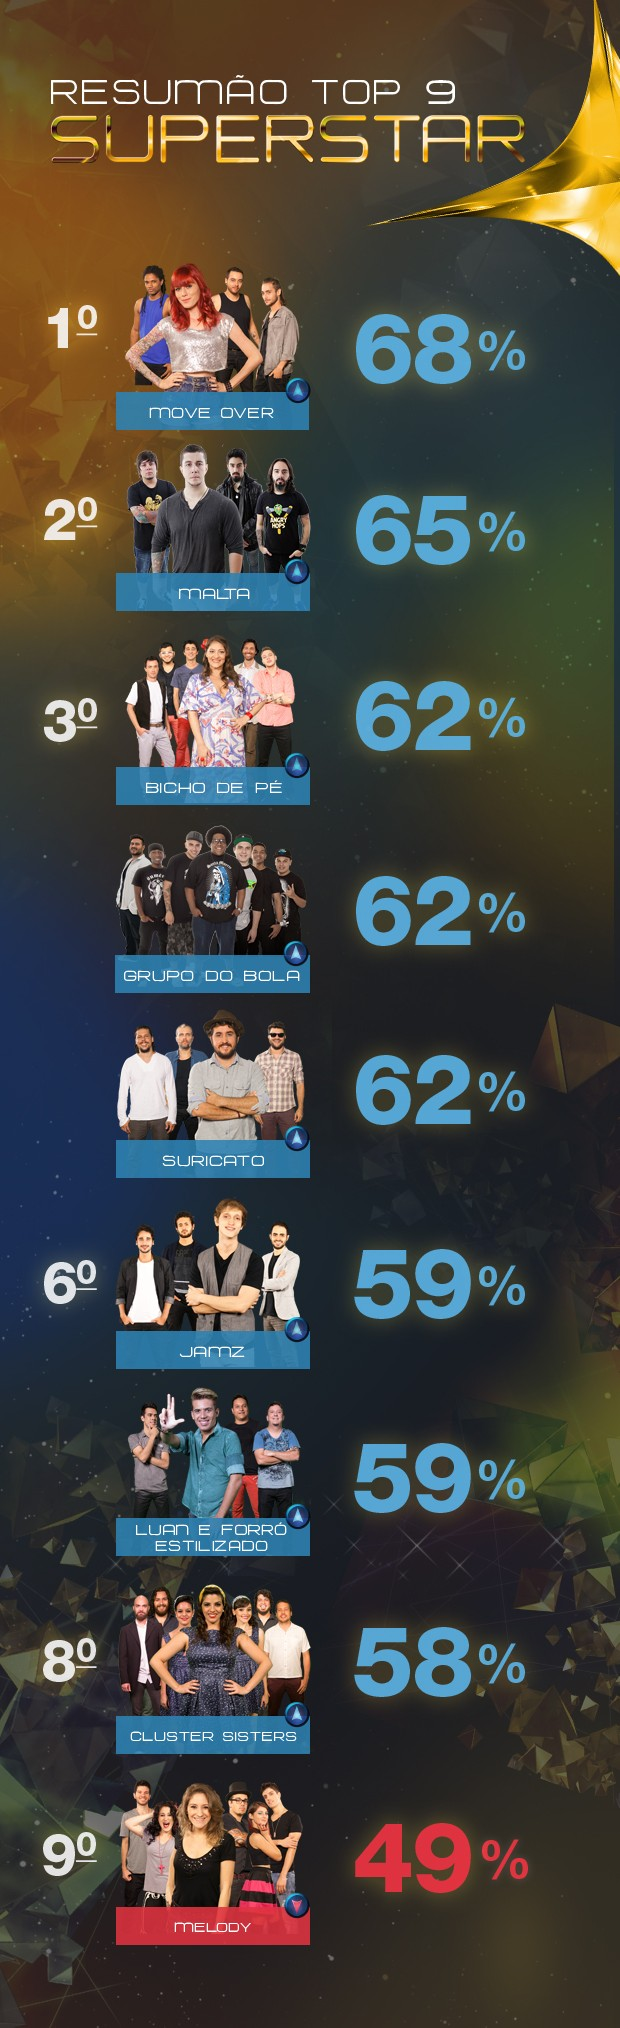 Resumo Top 9 (Foto: SuperStar/TV Globo)